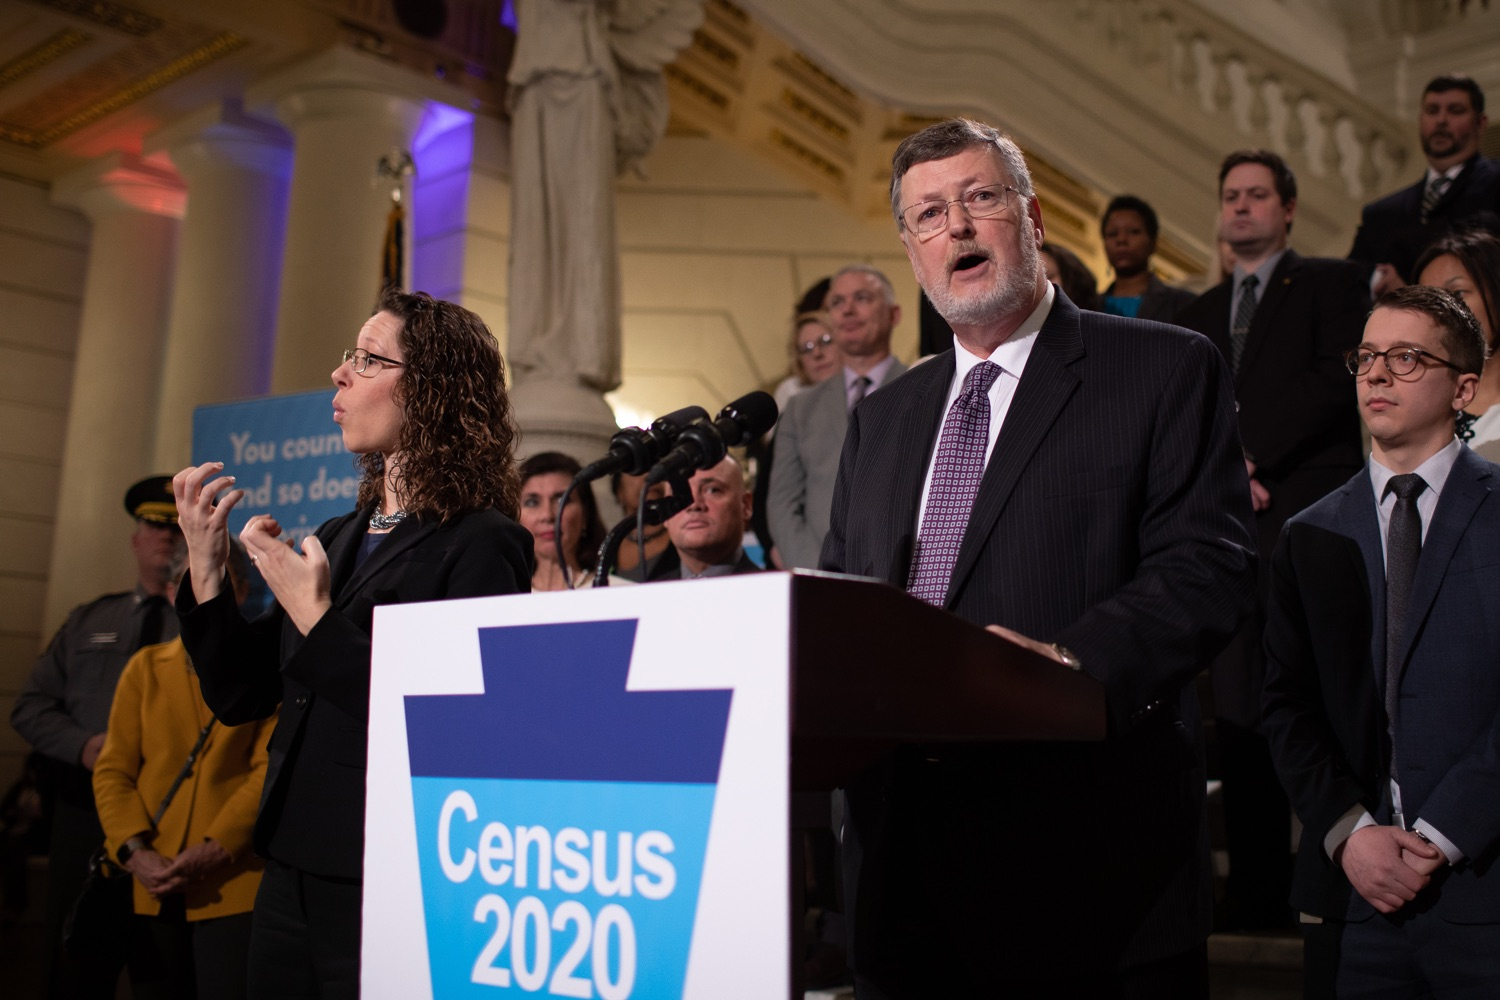 """<a href=""""http://filesource.abacast.com/commonwealthofpa/photo/17690_dced_2020census_dz_008.jpg"""" target=""""_blank"""">⇣Download Photo<br></a>Jerry Oleksiak Pennsylvania Labor & Industry secretary speaking in the Pennsylvania Capitol Rotunda.  Today, officials from the Wolf Administration including Second Lady Gisele Fetterman, representatives from the Department of Community of Economic Development (DCED), and Department of Human Services (DHS) Secretary Teresa Miller joined state officials, stakeholders, and others at a Capitol rally to urge Pennsylvanians to participate in the 2020 U.S. Census this year.  Harrisburg, PA  January 13, 2020"""